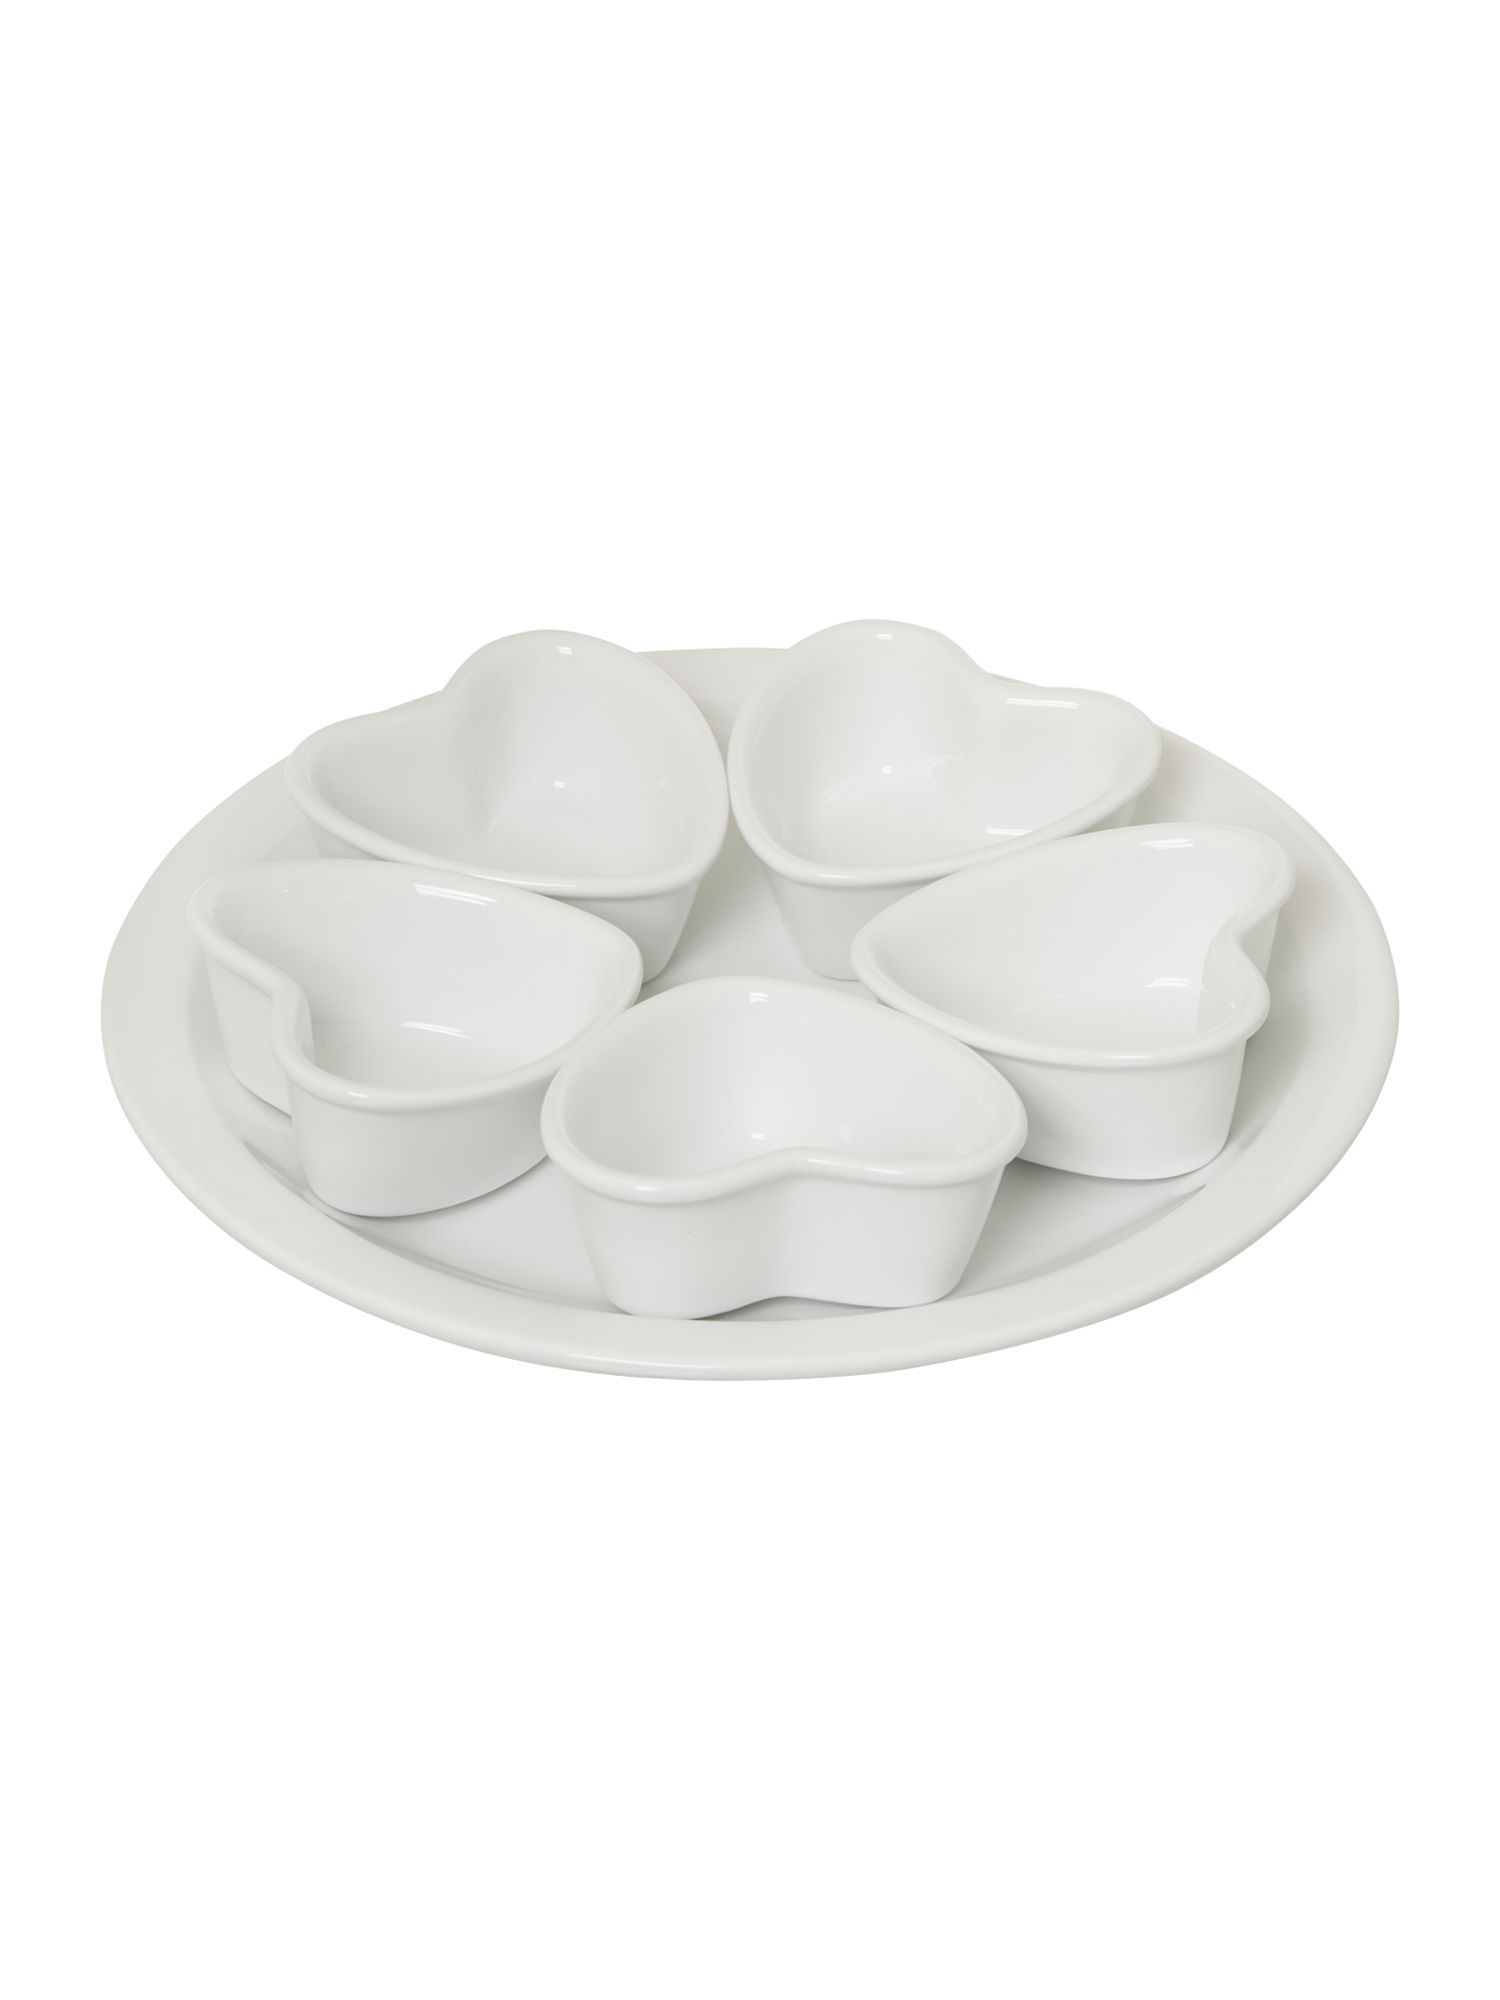 Beau heart serving plate with mini bowls